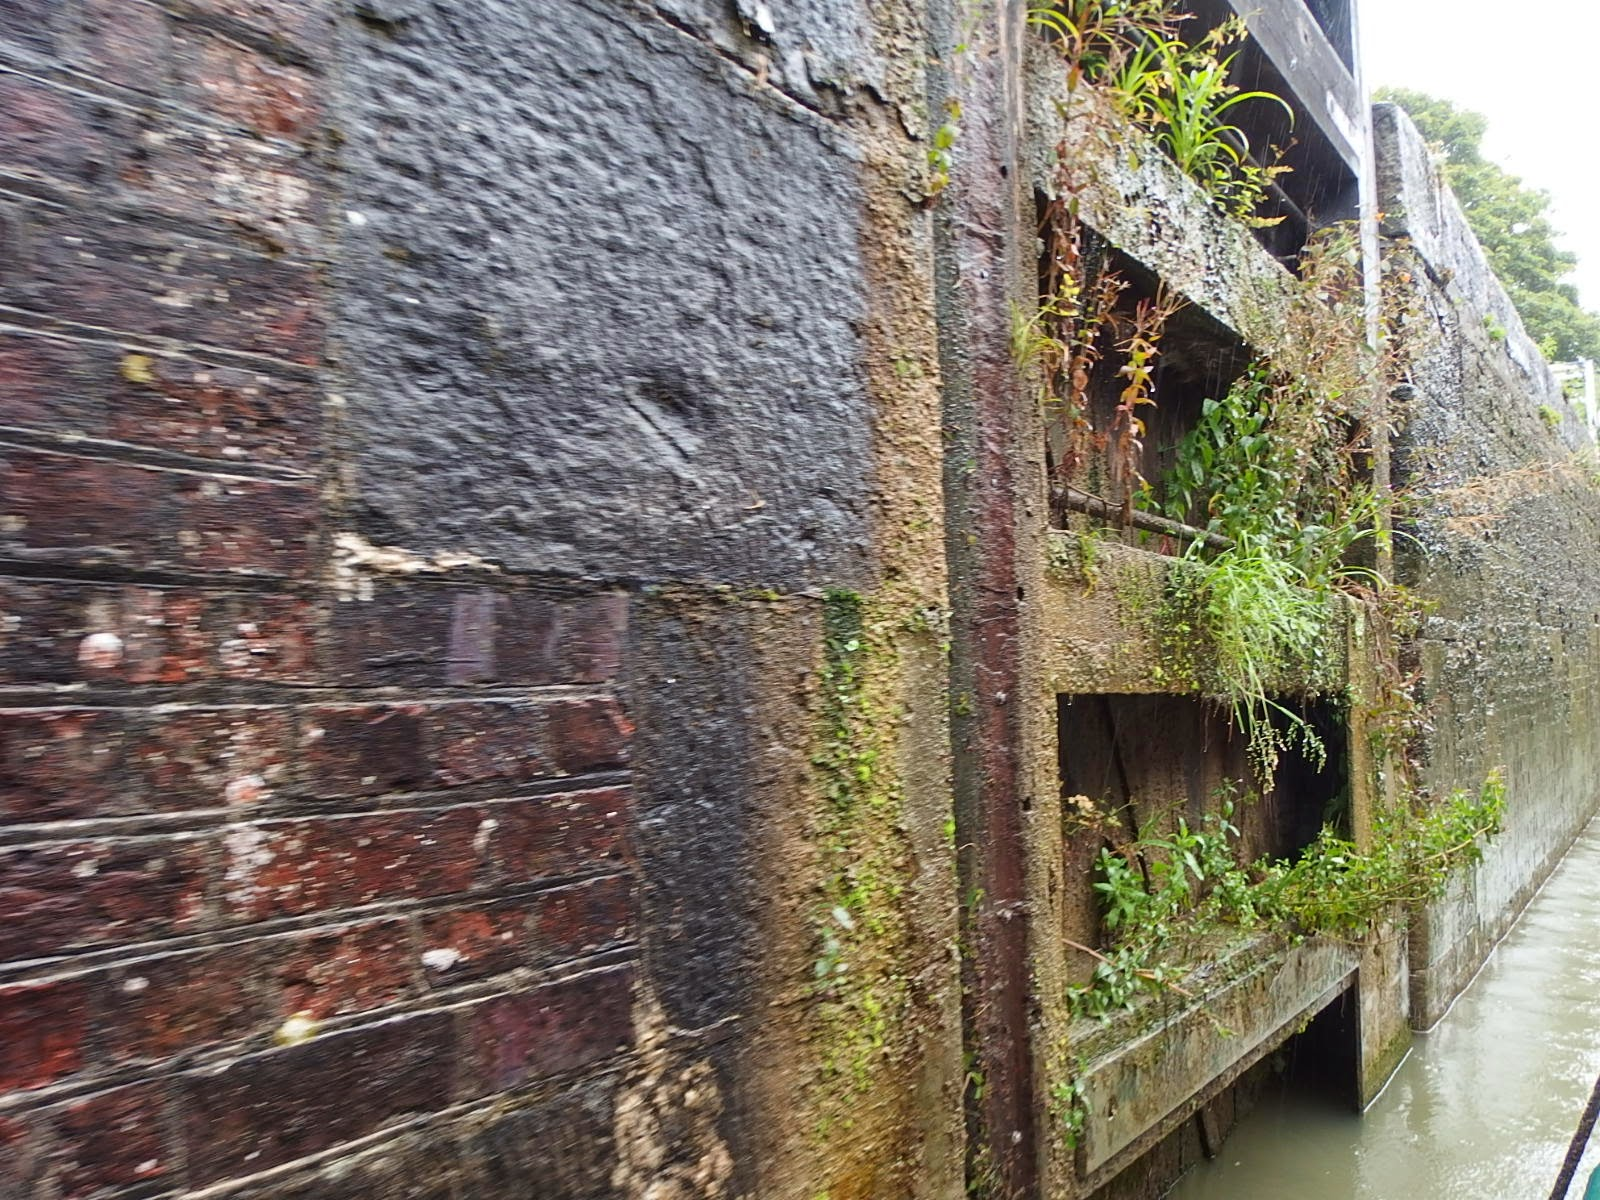 Plant communities in a lock gate on the Kennet and Avon canal at Devizes